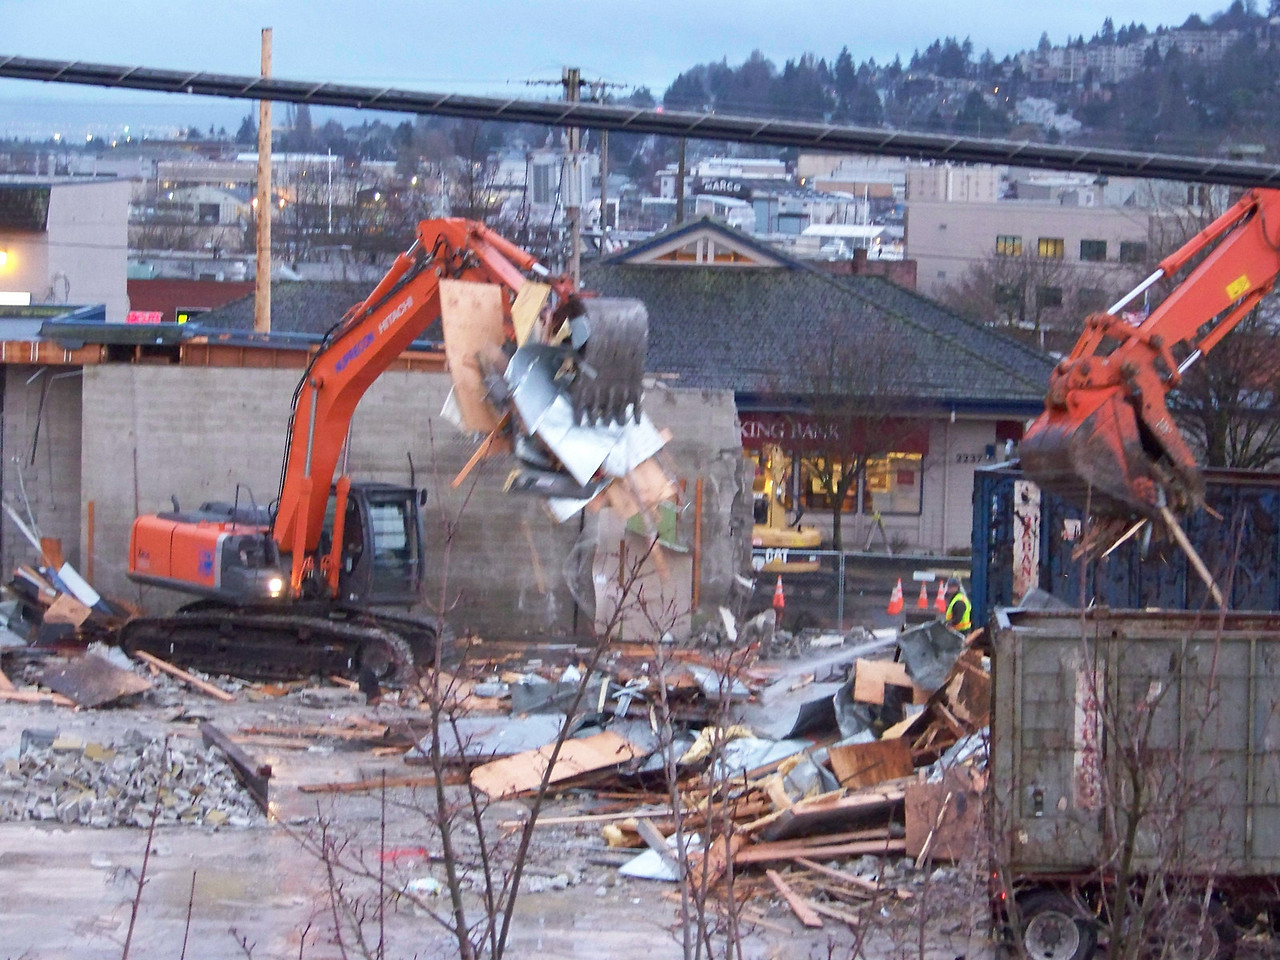 January 10, 2008.  Behind the demolition of the old Ballard QFC building, the Viking Bank building is visible from my balcony for the very first time.